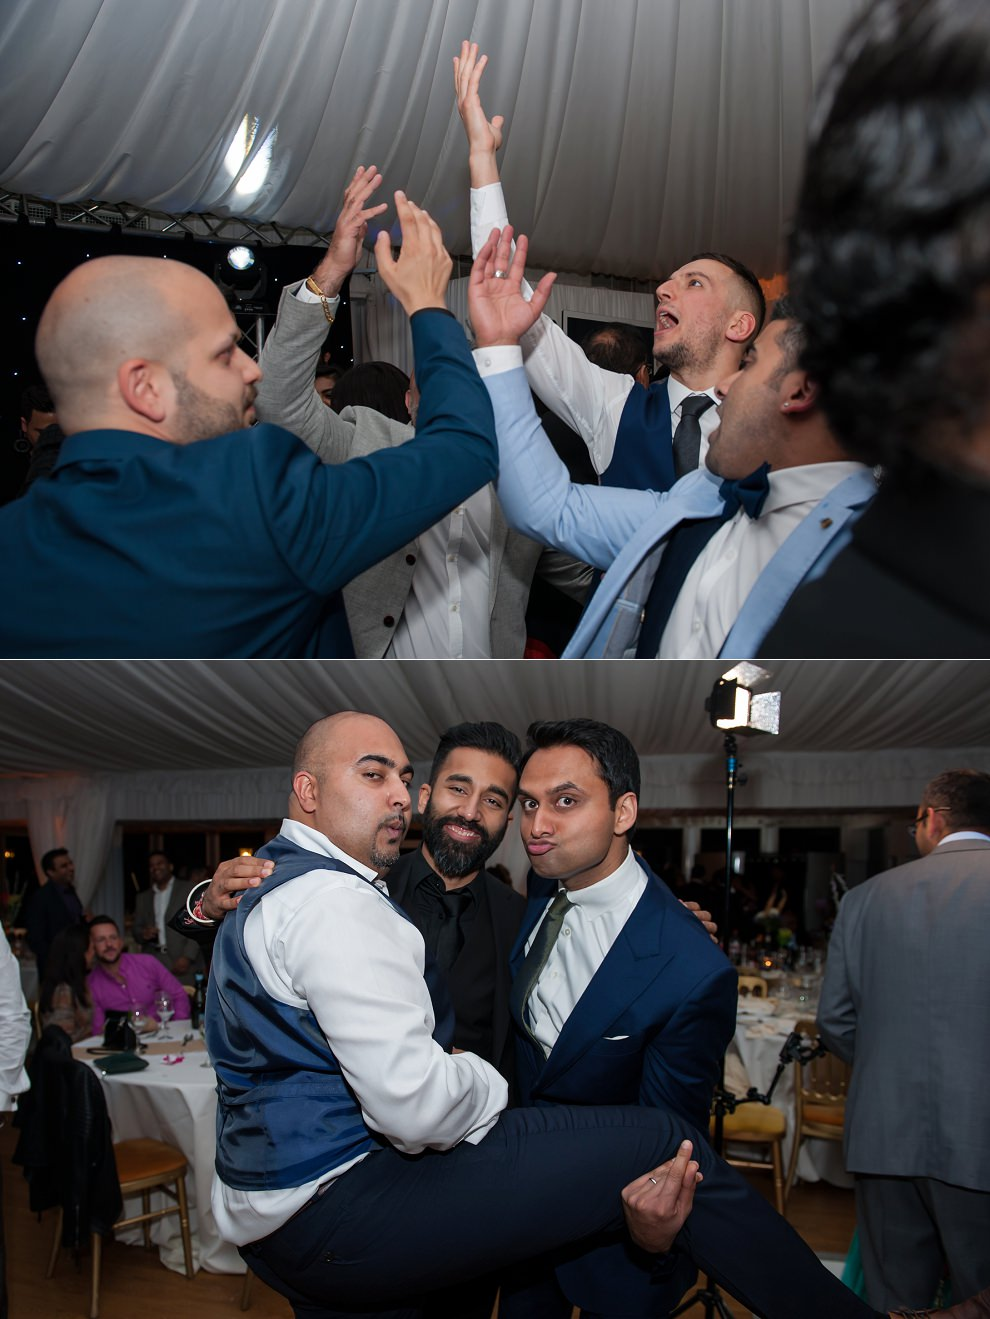 Boreham-House-Wedding-Essex-Rupal Dipen-75